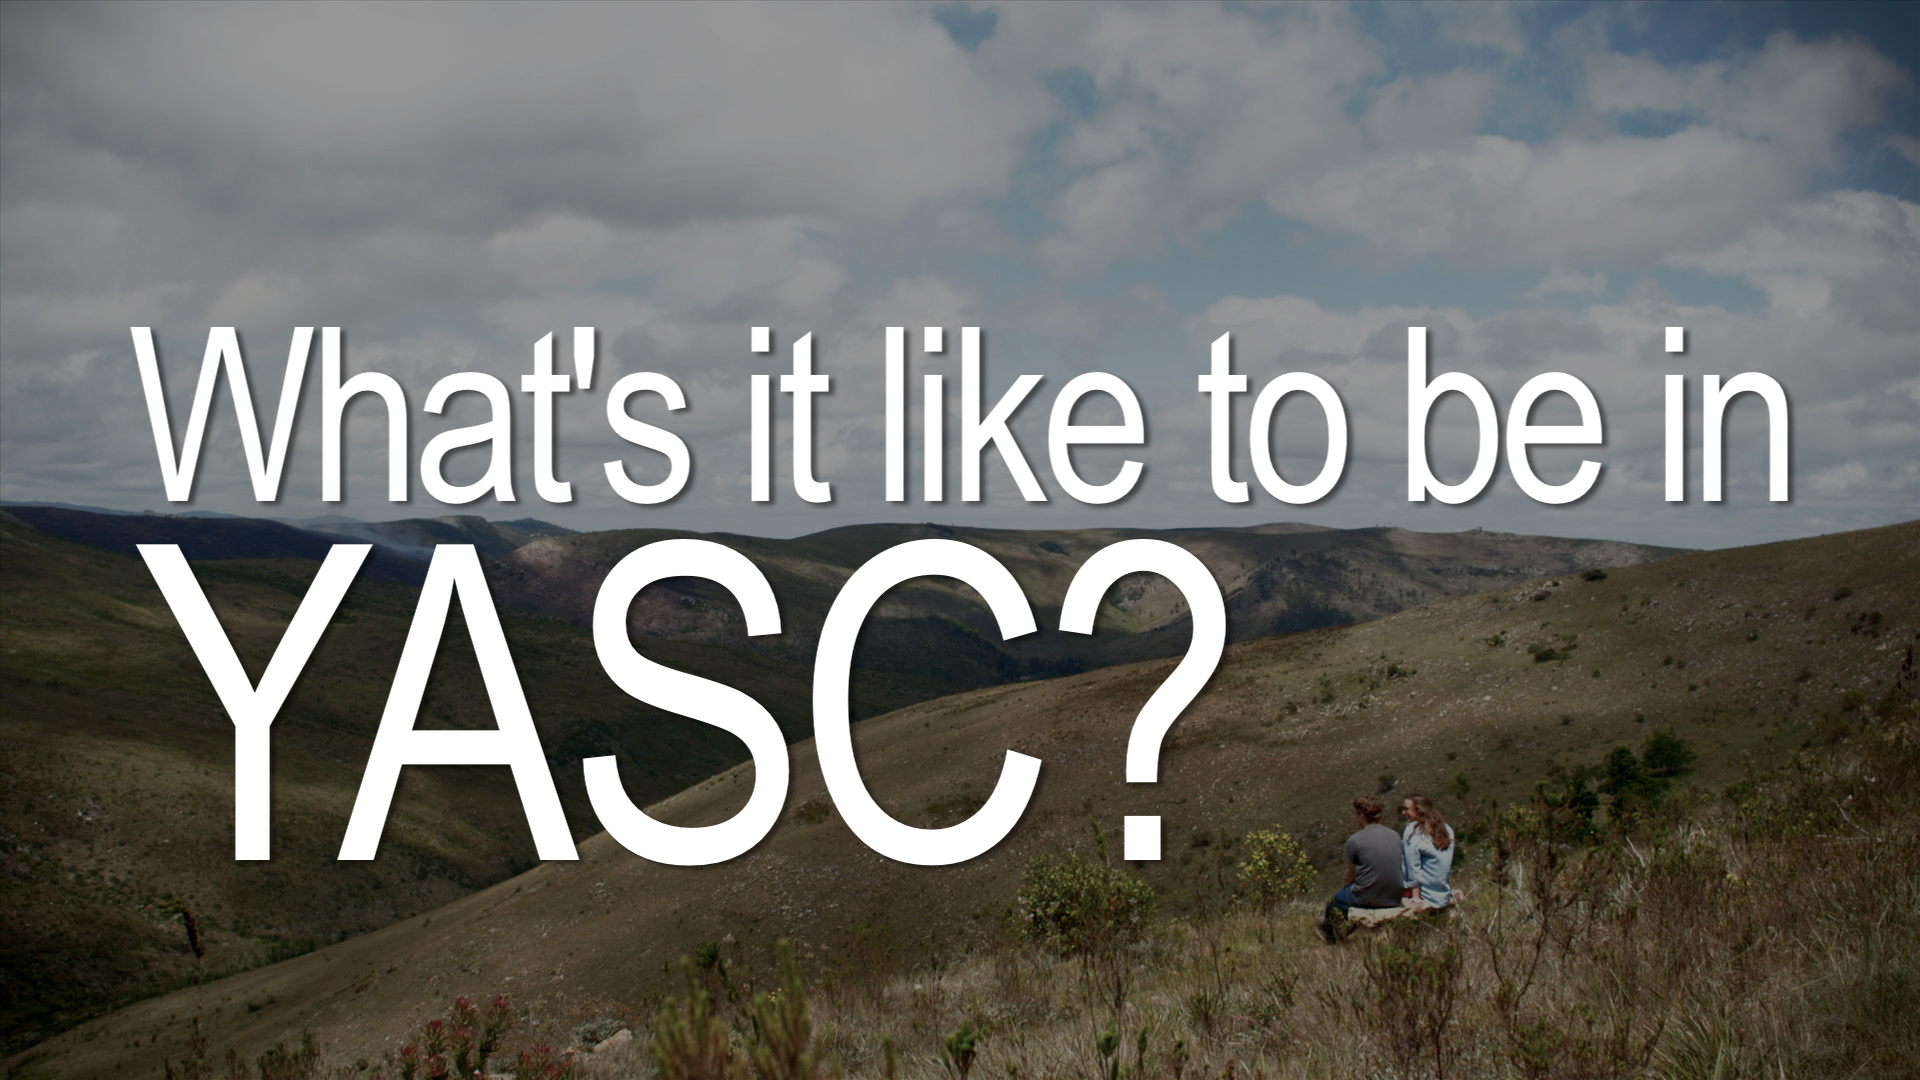 YASC: What's it like to be in YASC